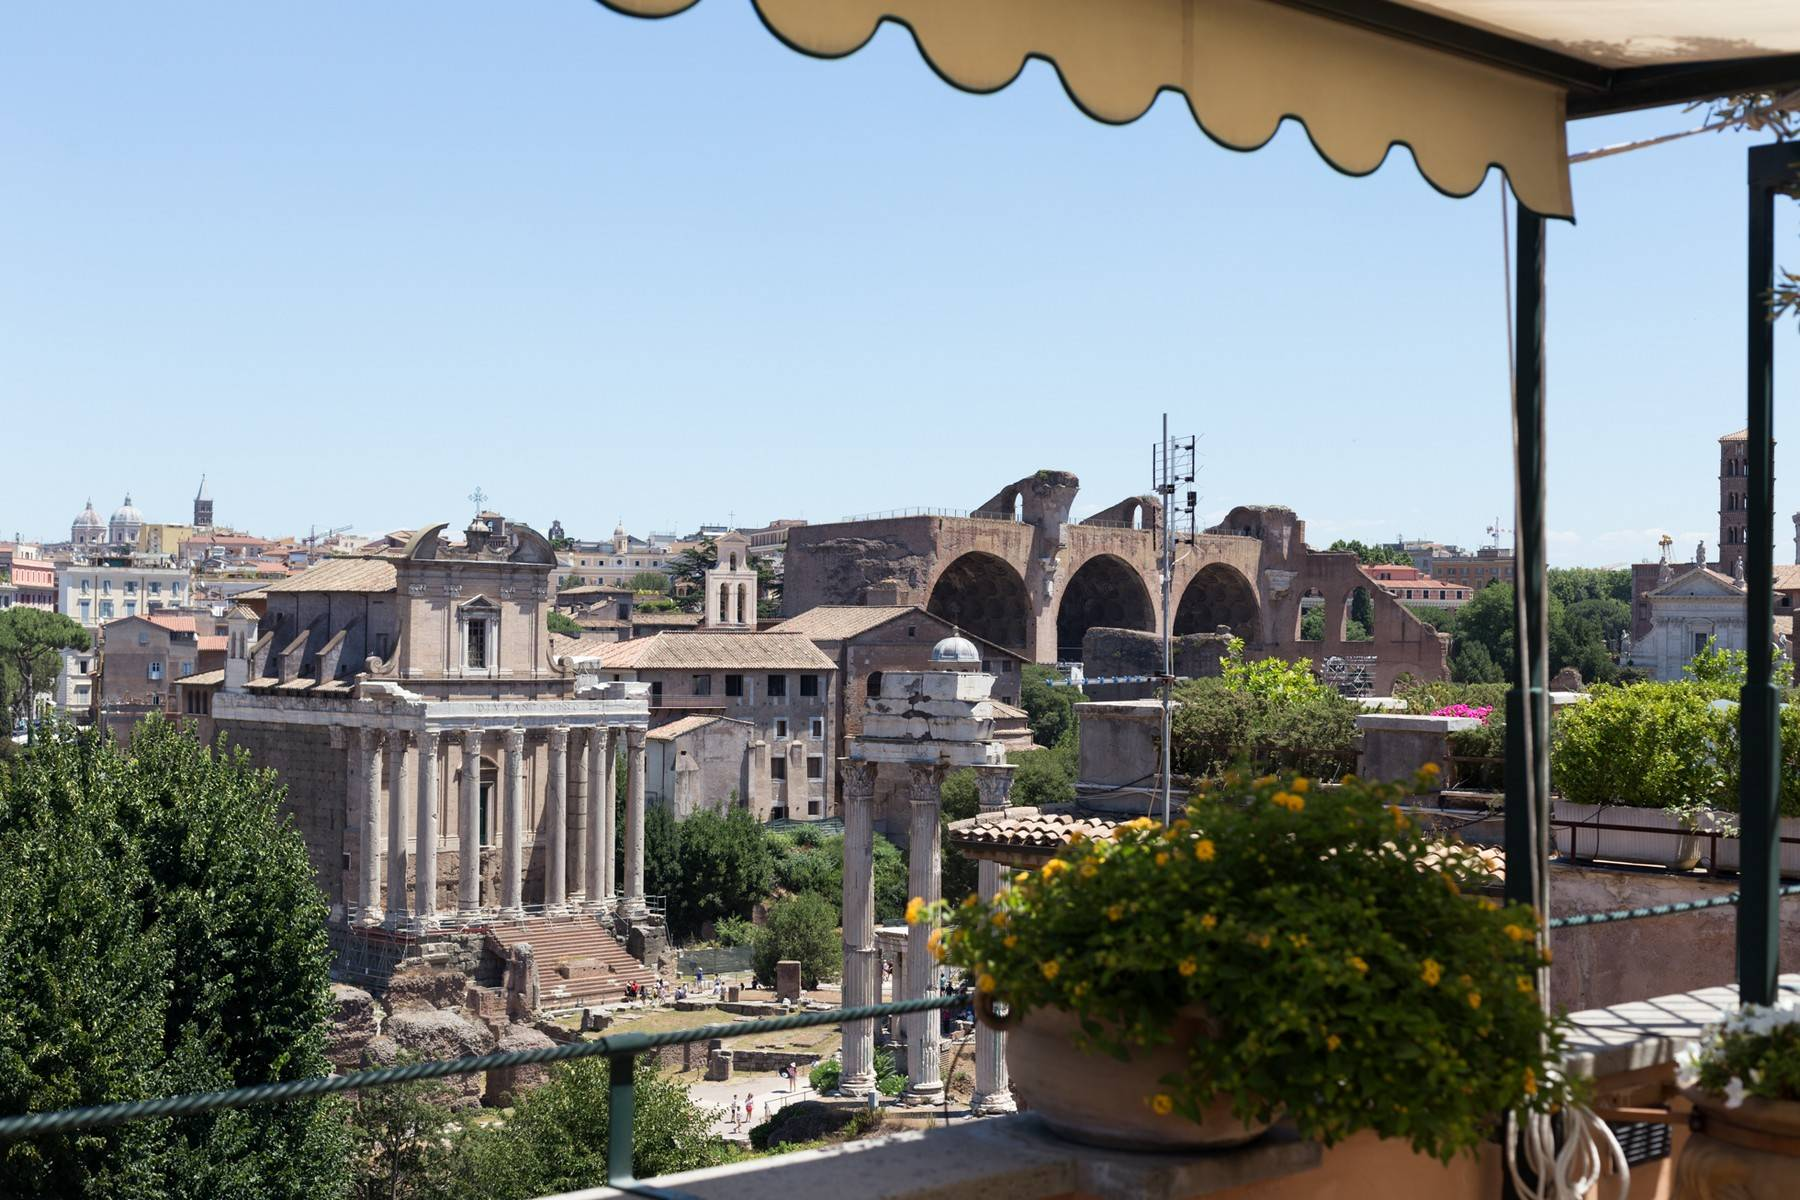 Apartments 为 出租 在 Amazing penthouse immersed in ancient Rome 罗马, 罗马 意大利